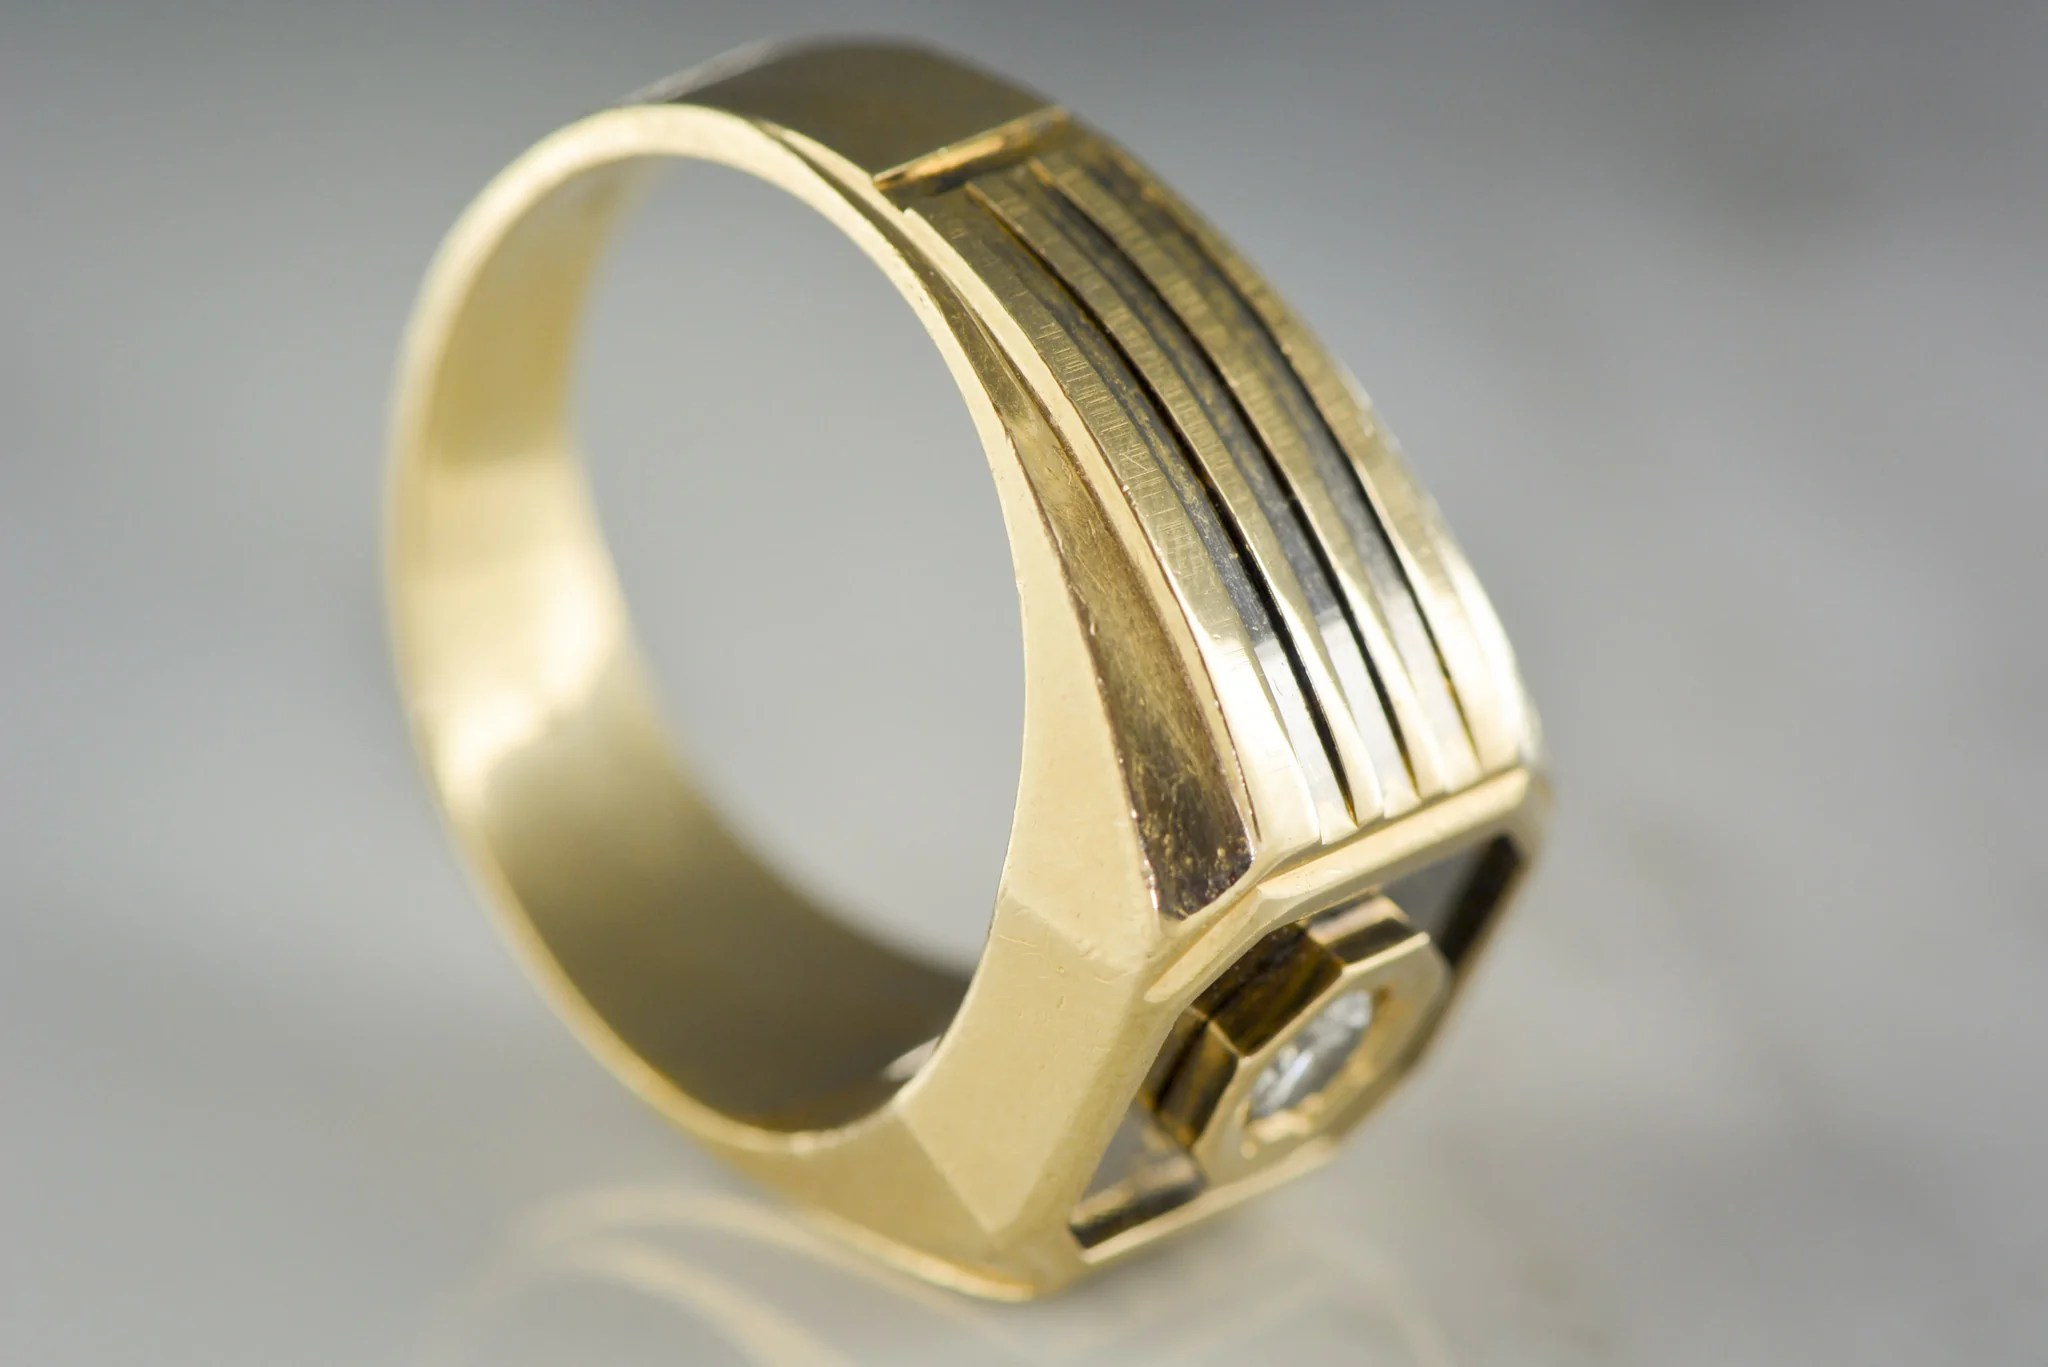 mens lemans wedding band or pinky ring with 25 carat diamond in 14k yellow gold pp antique mens wedding bands Vintage Men s LeMans Wedding Band or Pinky Ring with 25 Carat Diamond in 14K Yellow Gold